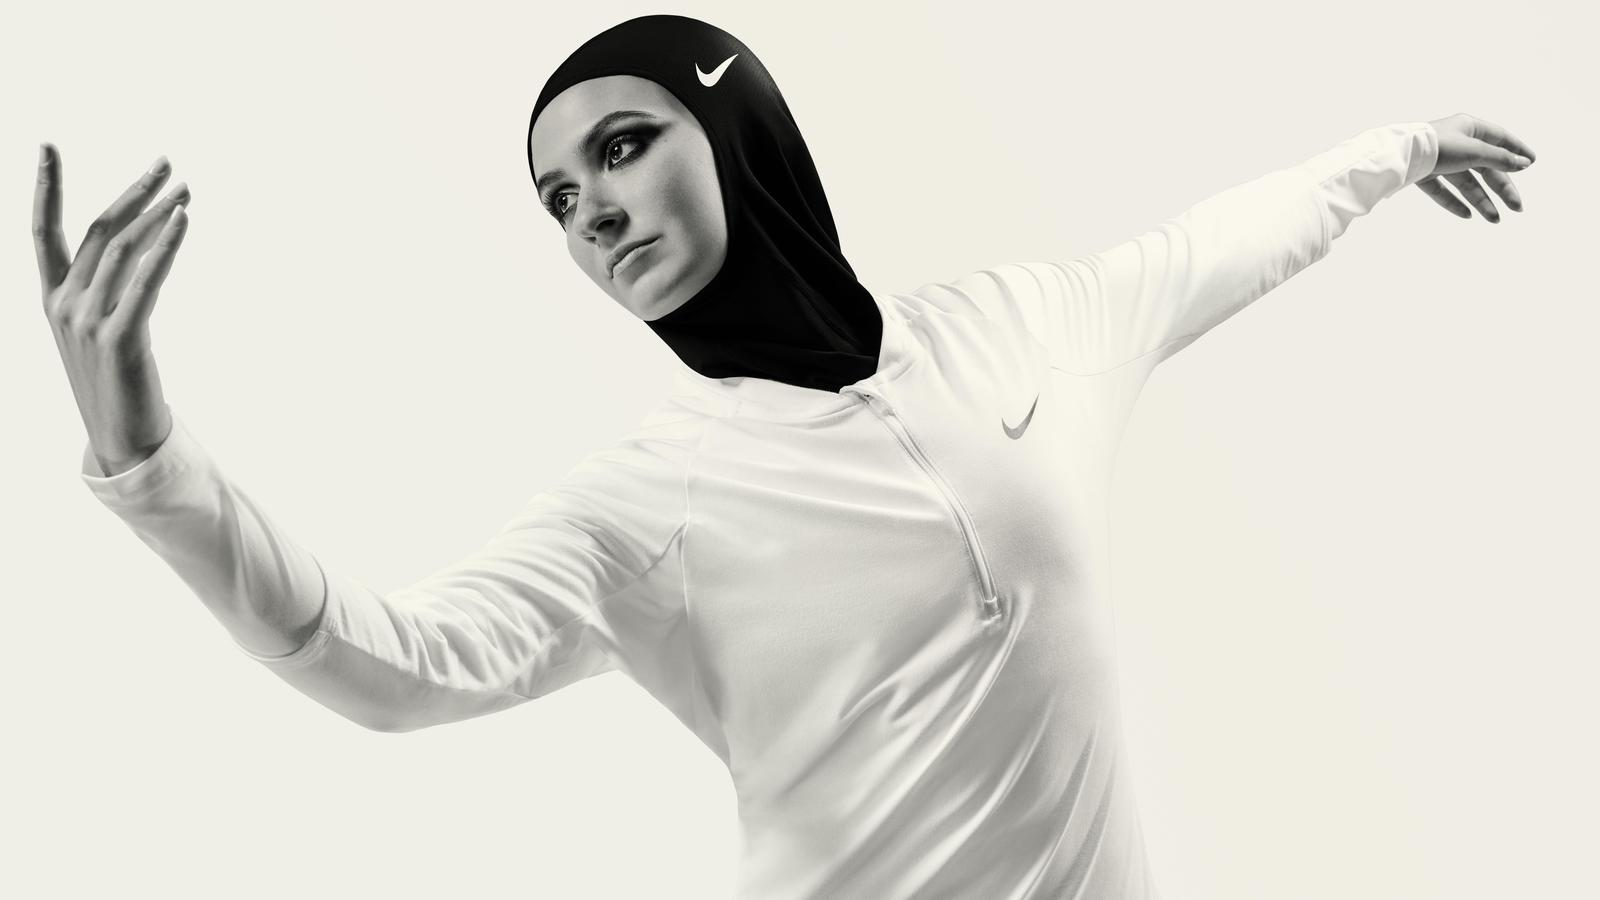 The Nike Pro Hijab Goes Global Nike News - Nike is going to launch a hijab collection developed together with muslim athletes